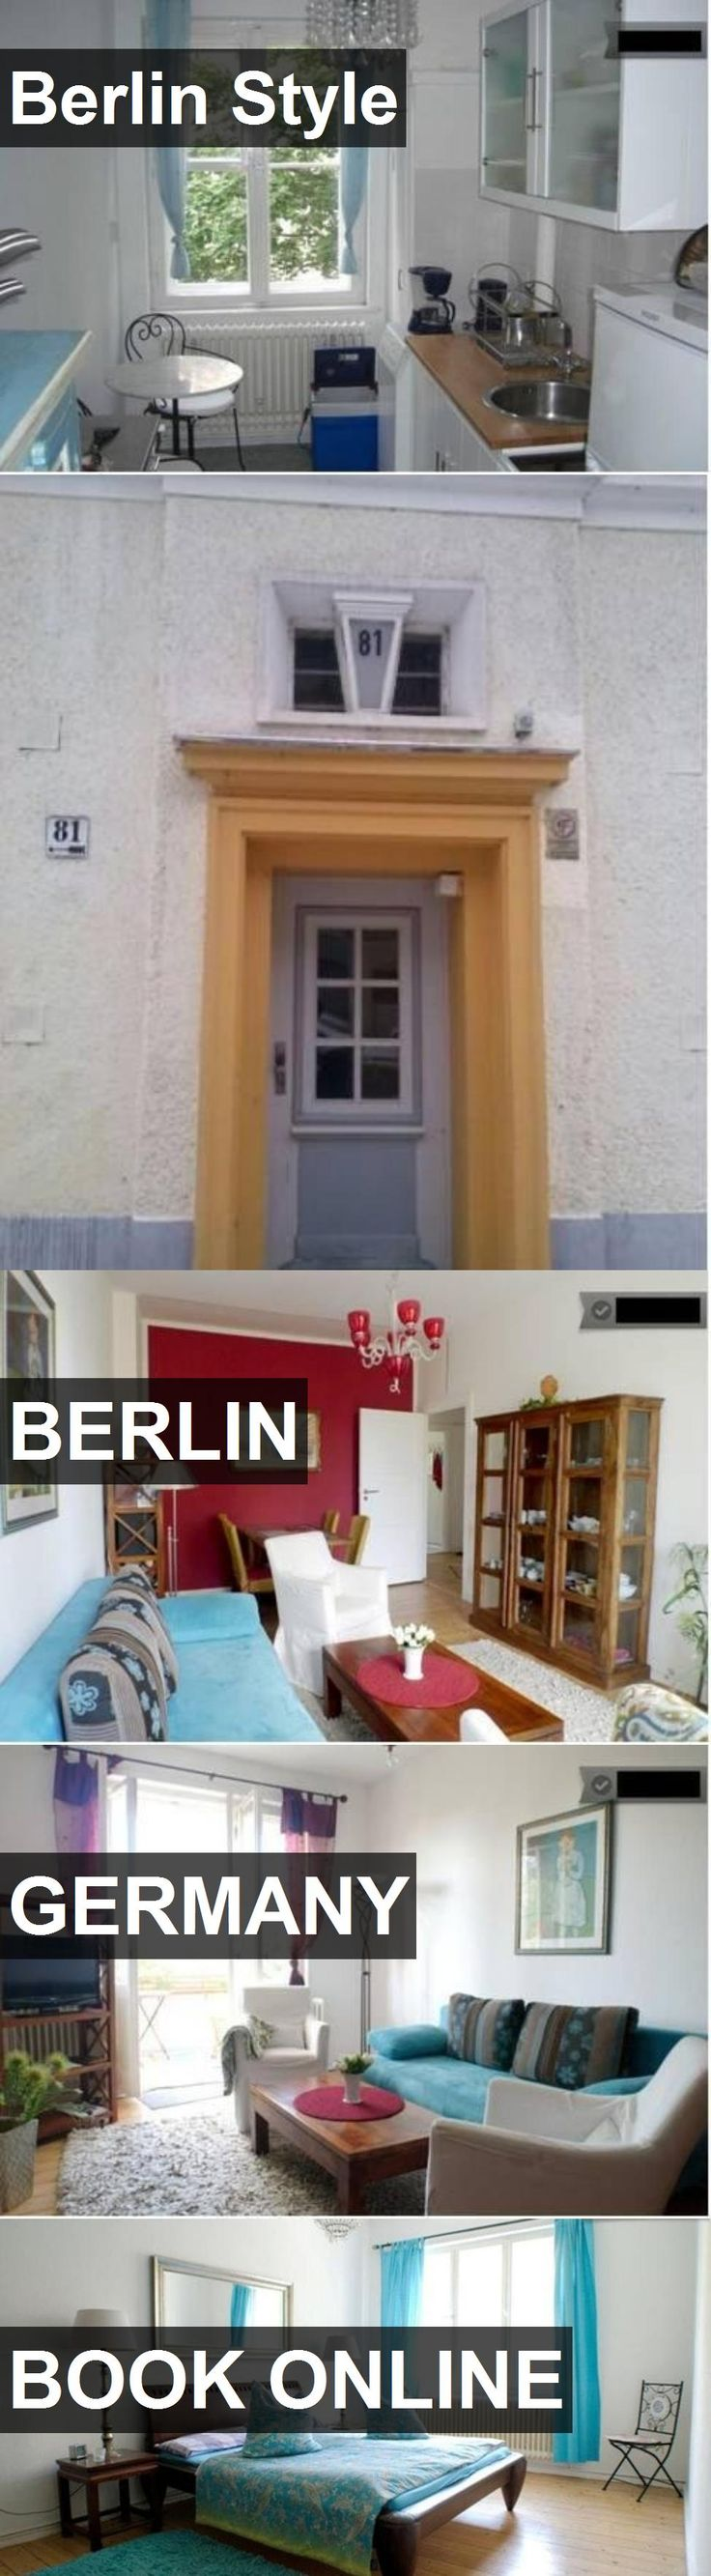 Hotel Berlin Style in Berlin, Germany. For more information, photos, reviews and best prices please follow the link. #Germany #Berlin #travel #vacation #hotel